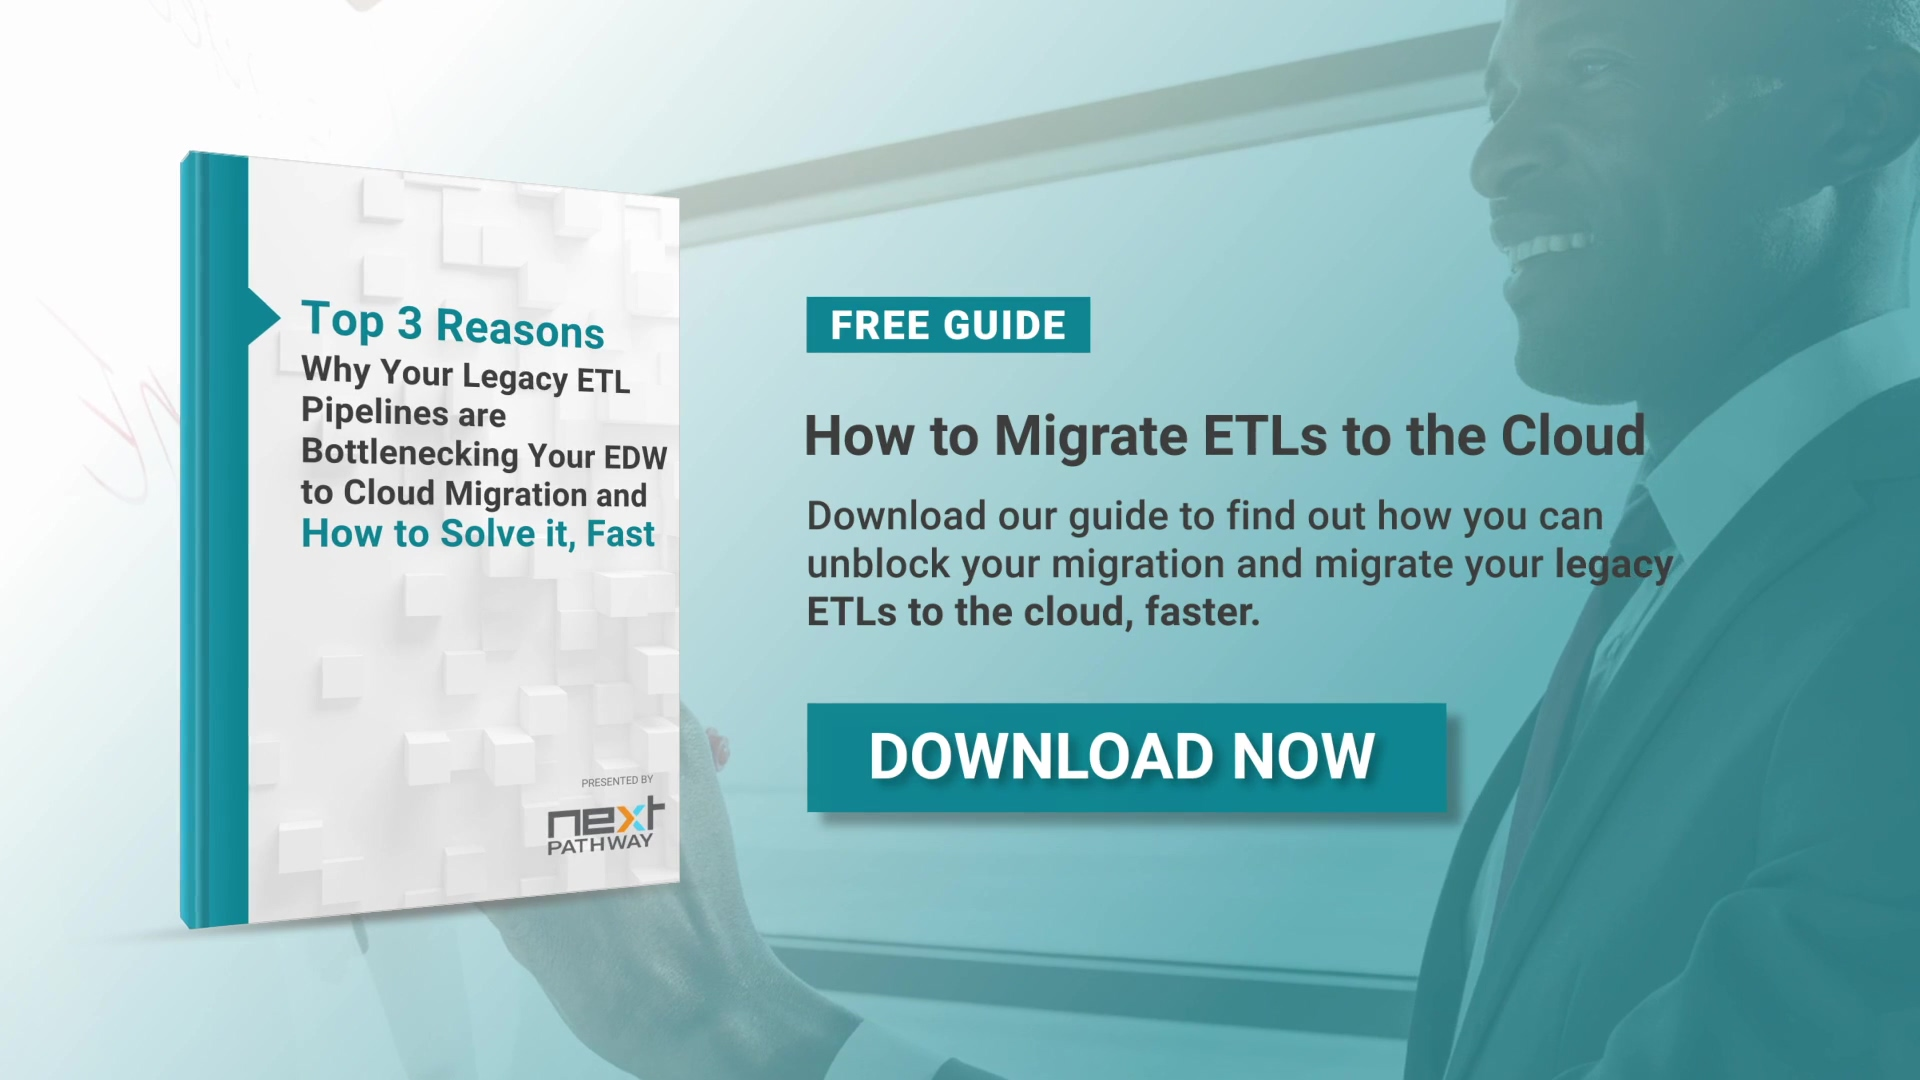 How to Migrate ETLs to the Cloud